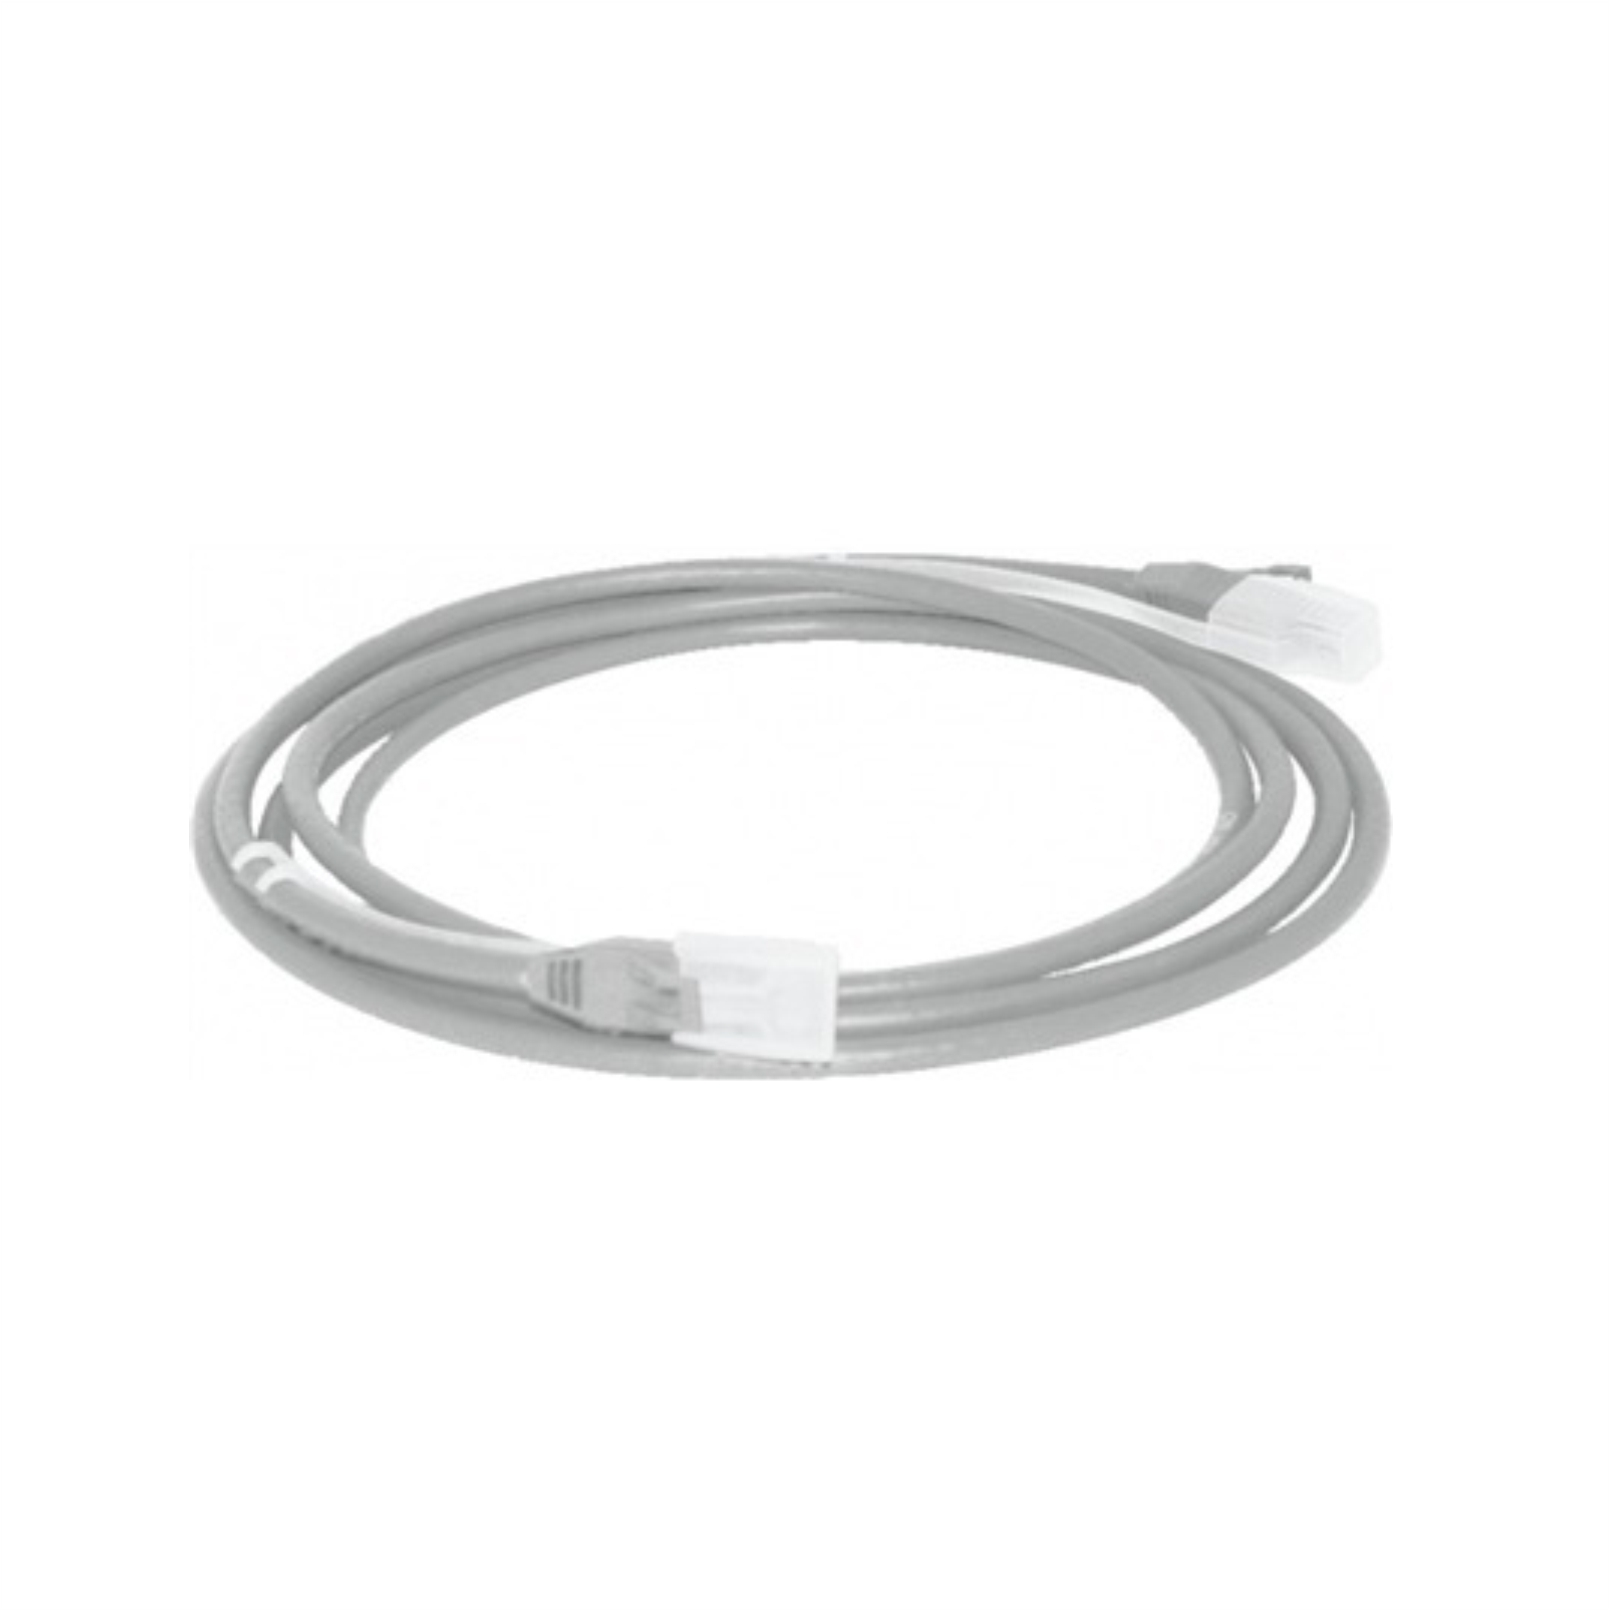 PATCH CORD CAT 5E 2,5MT CINZA